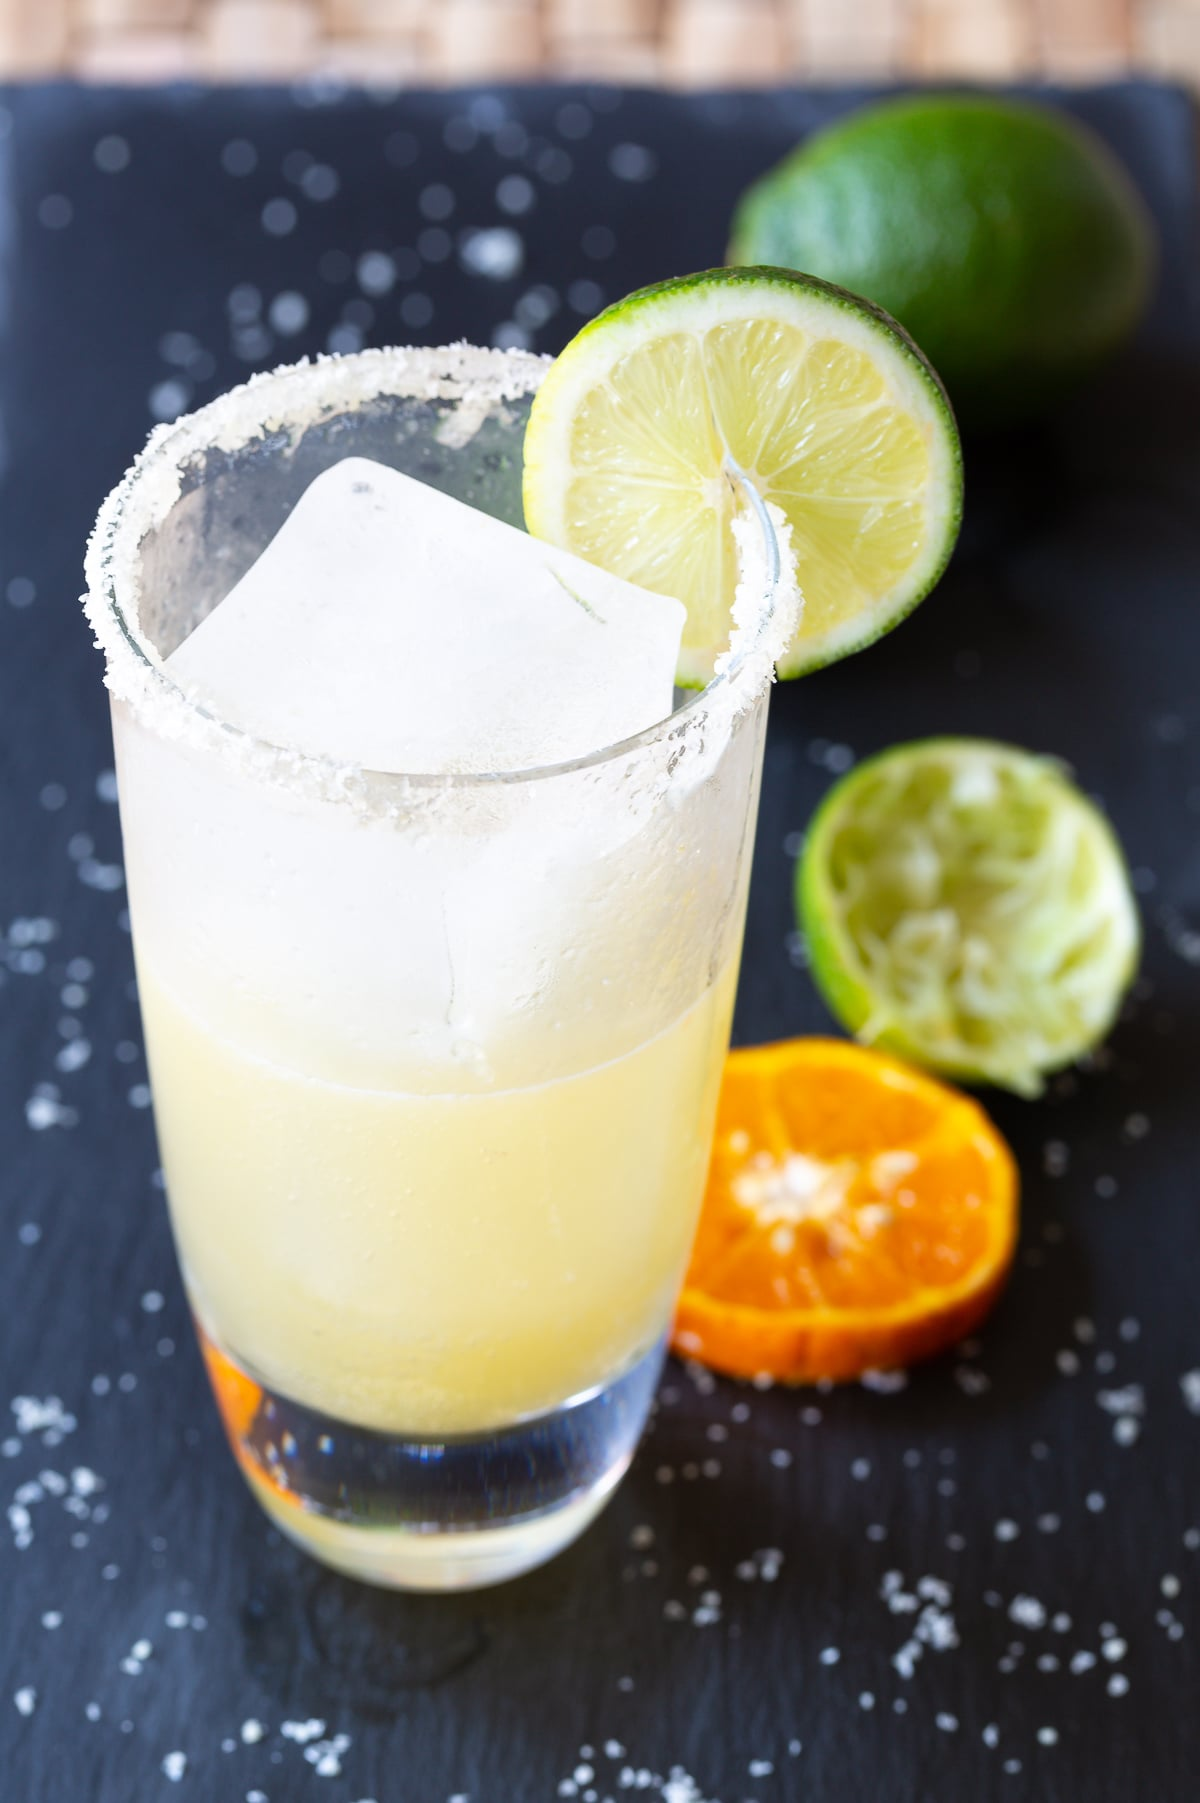 Easy Margarita Recipe on the Rocks! #CincodeMayo #Margaritas #margs #Mexican #Cocktails #tequila